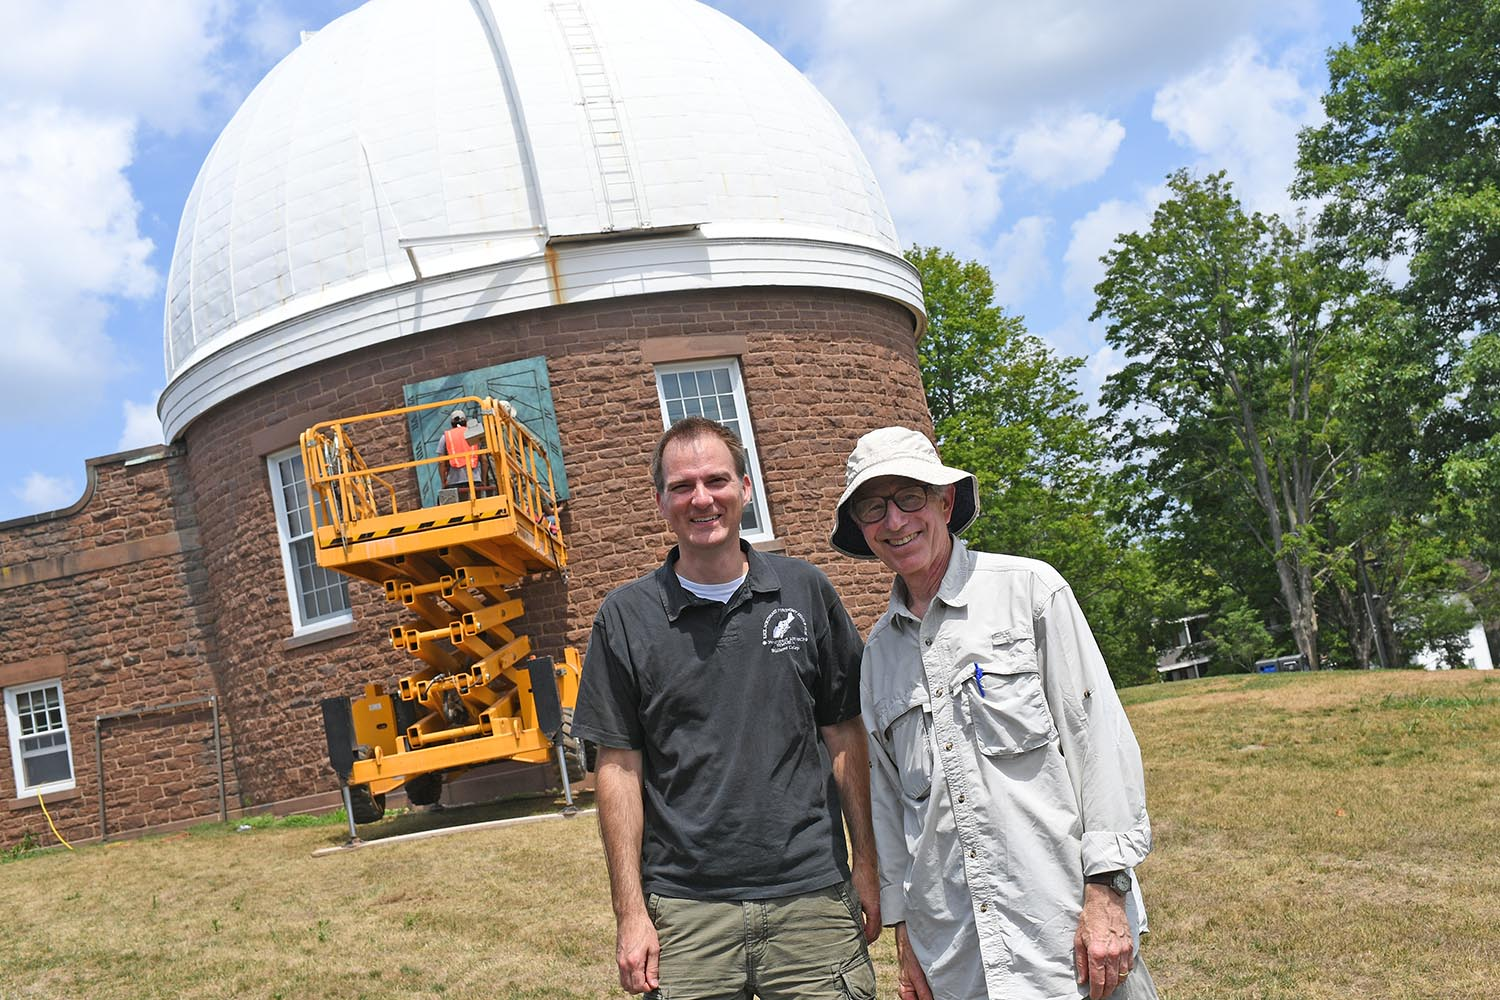 Seth Redfield, chair and associate professor of astronomy, associate professor of integrative sciences, and artist Robert Adzema observe a sundial's installation July 16 at the Van Vleck Observatory. Adzema, a maker of site-specific sundials, designed the sculpture to be placed at its exact location on the telescope's wall.